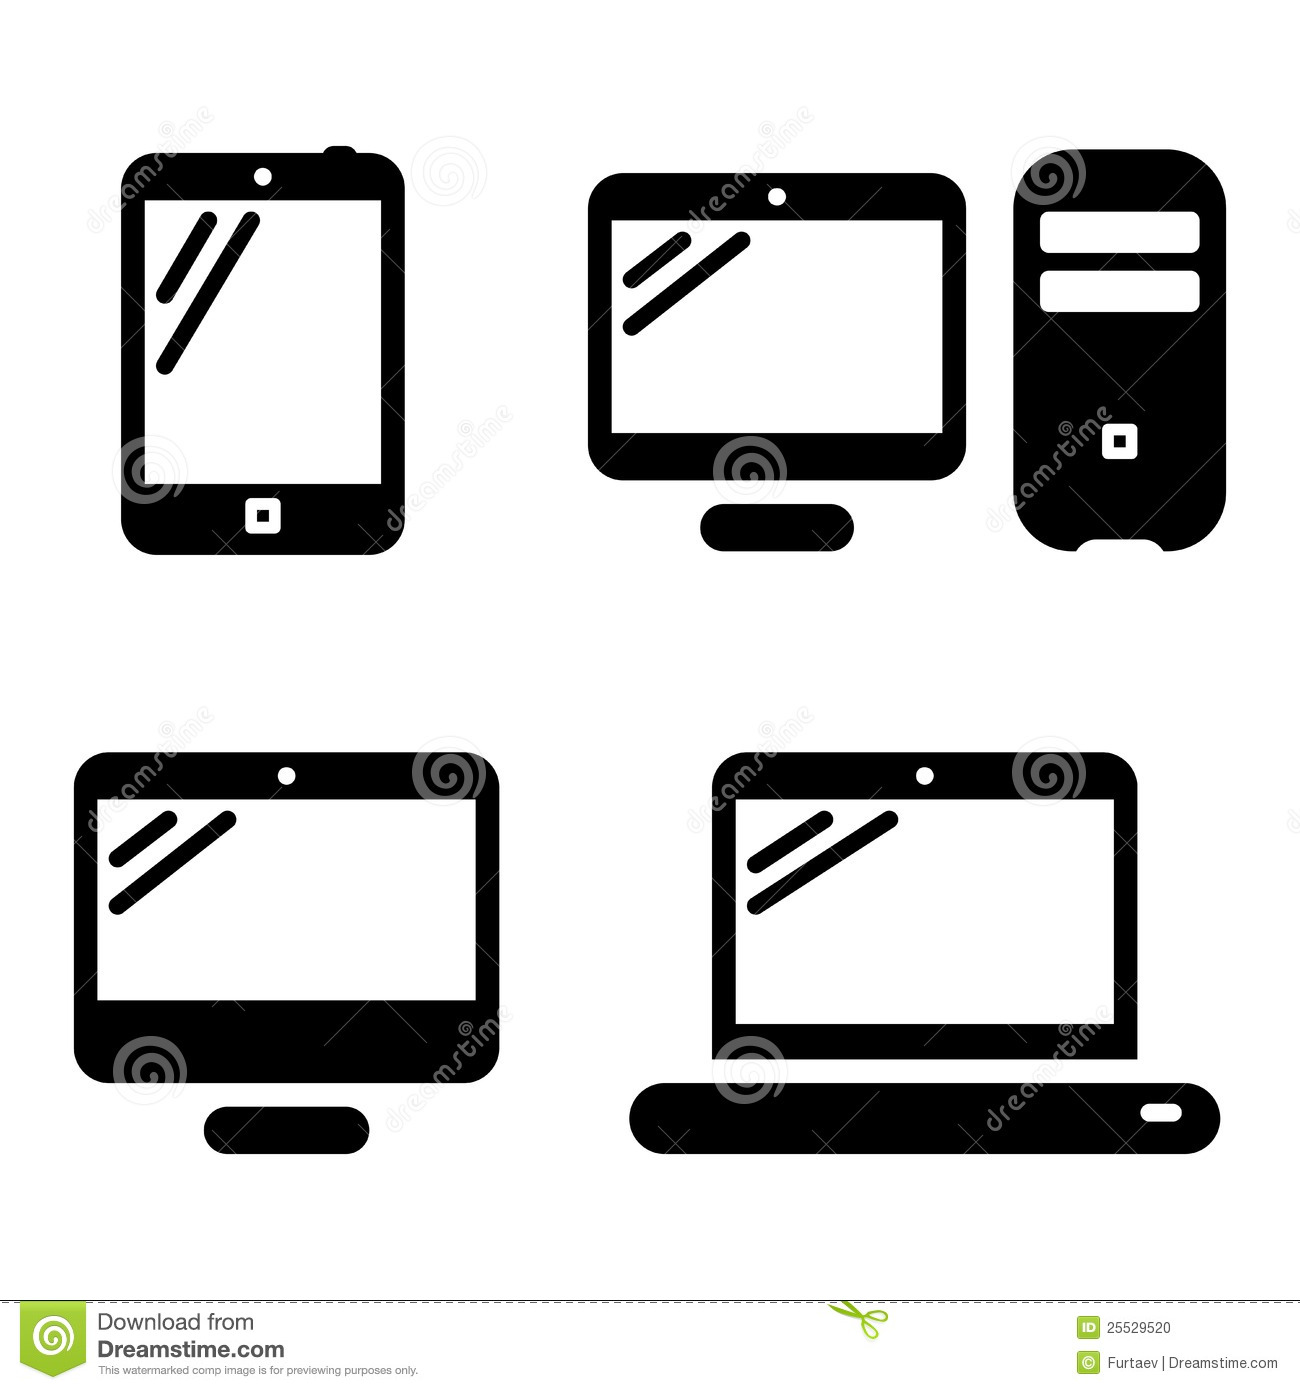 14 Black And White Laptop Icon Images